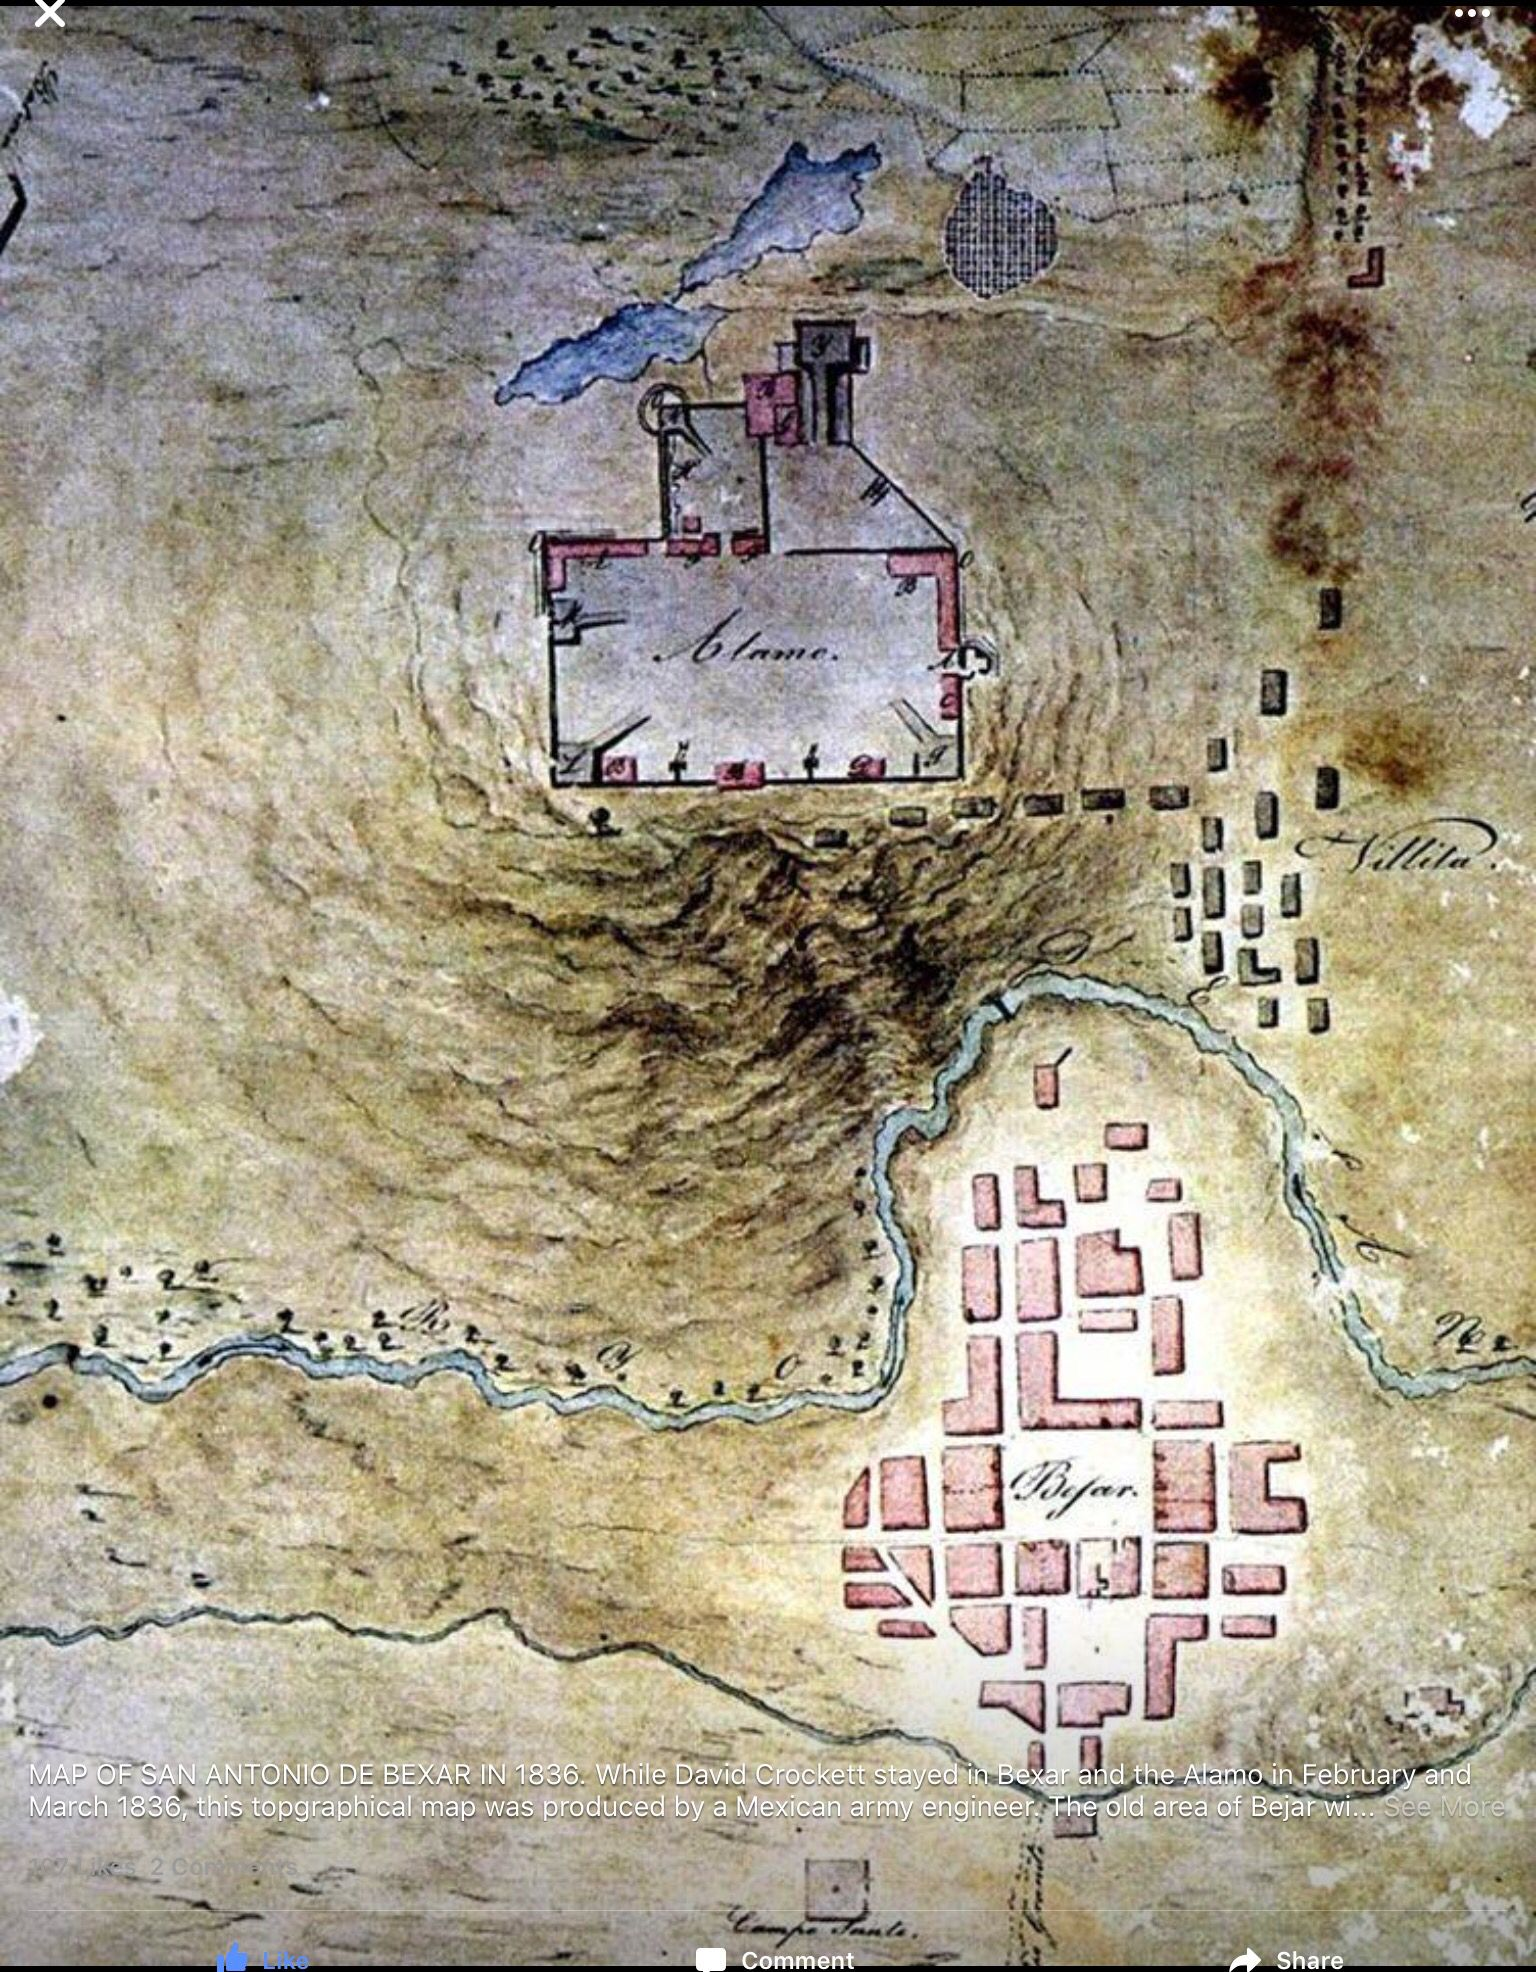 Topo Map Made By A Mexican Army Engineer THE ALAMO Pinterest - Battle of san jacinto map us